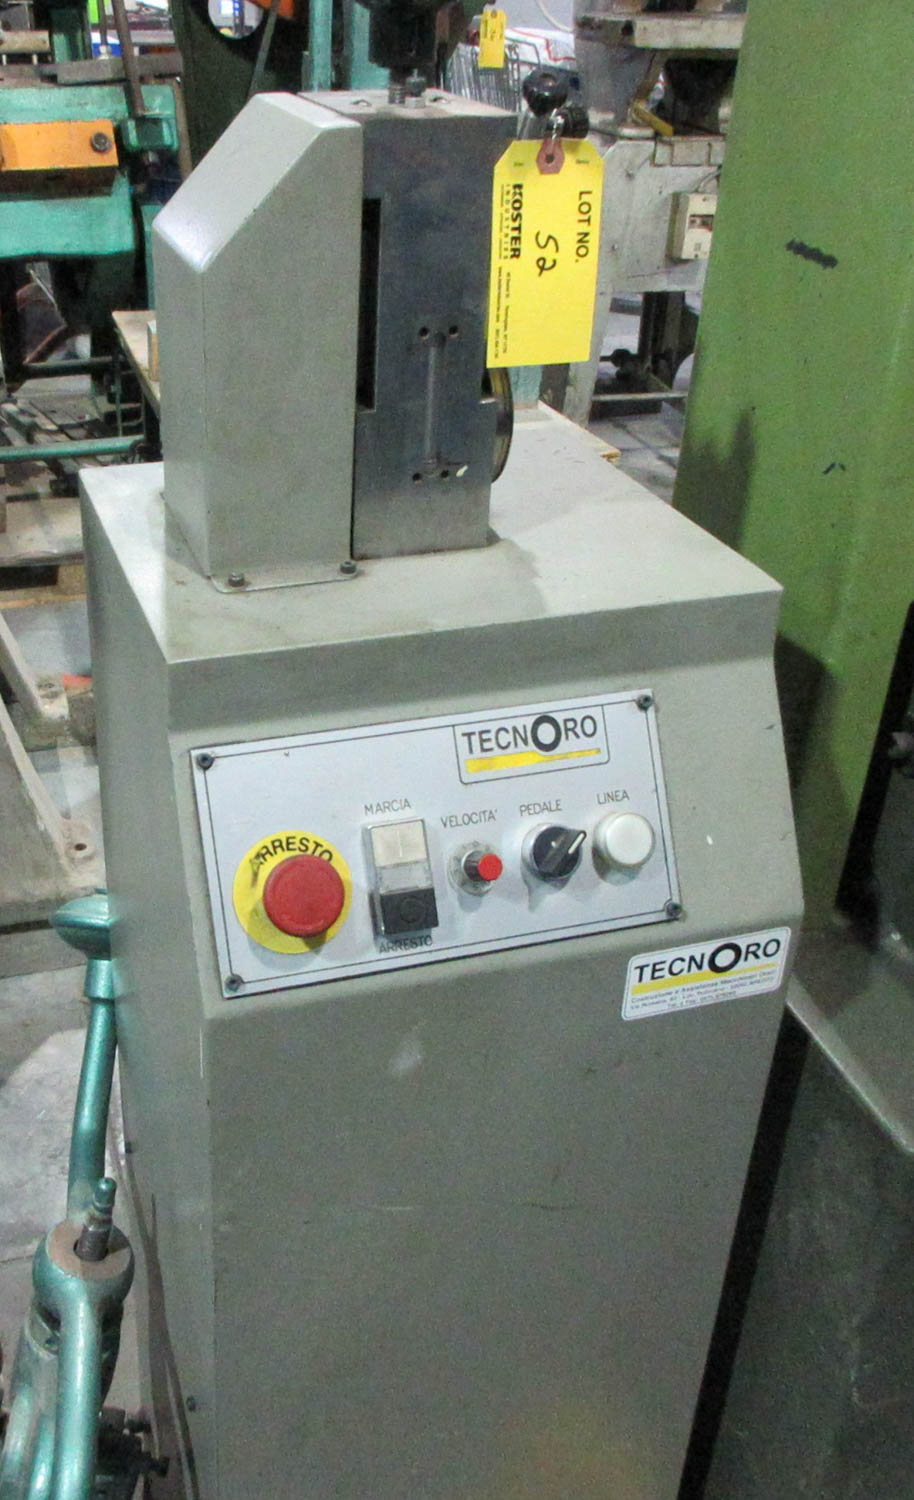 TECNORO (ITALY) BANGLE FORMING MACHINE (LATE MODEL) [A#227][LOCATED IN Kiryat Malachi]